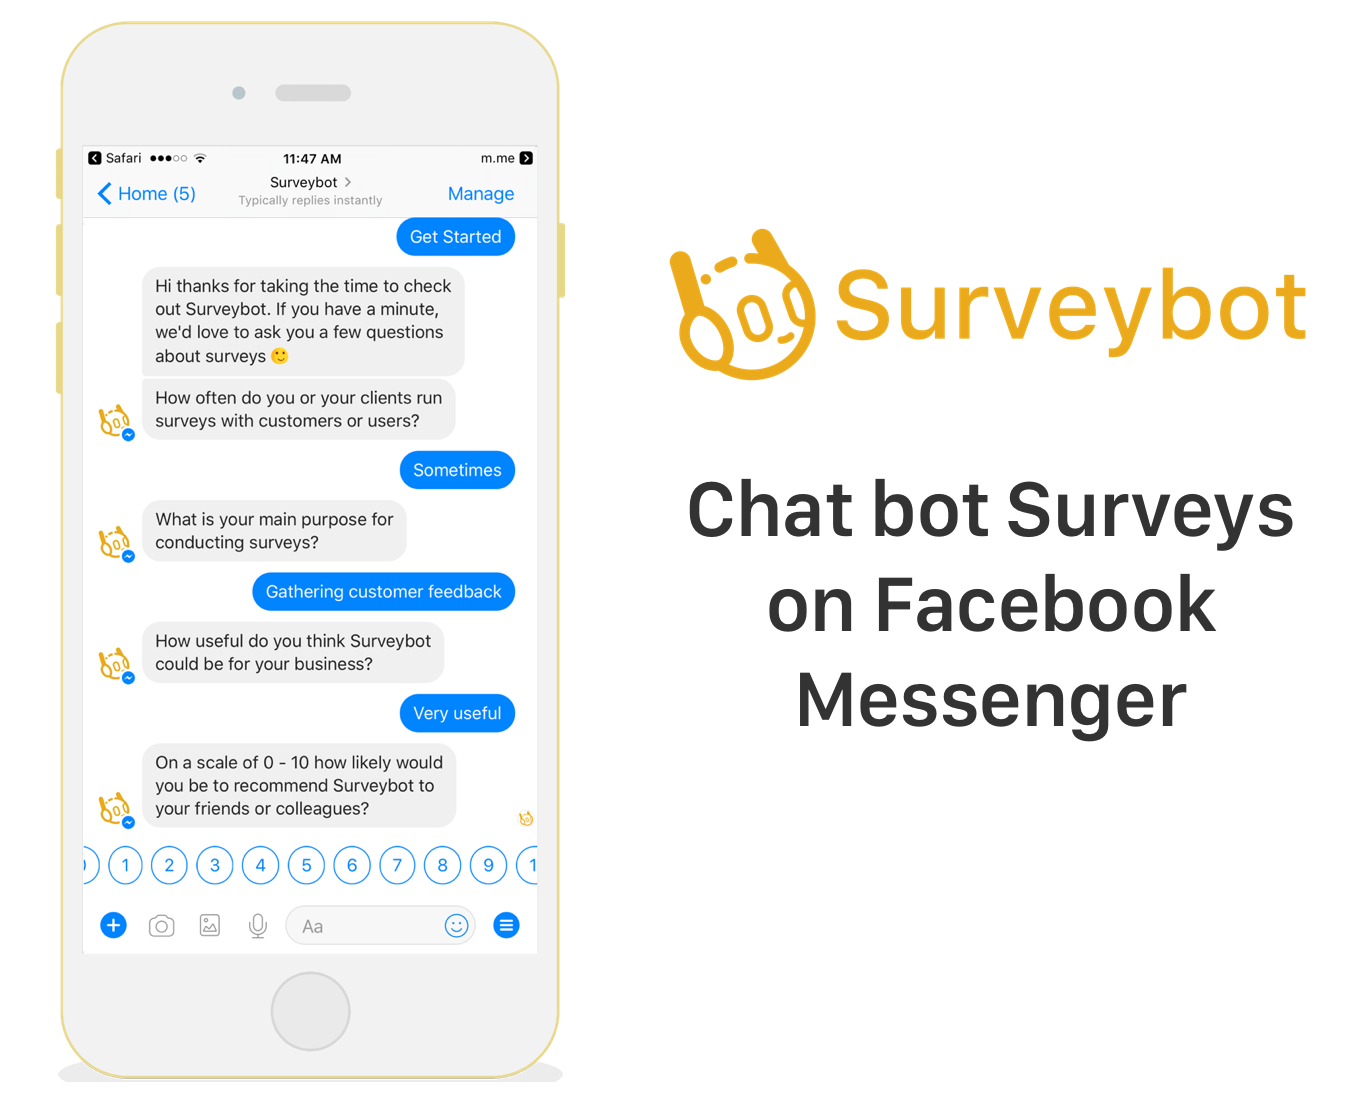 Chat bot surveys on Facebook Messenger